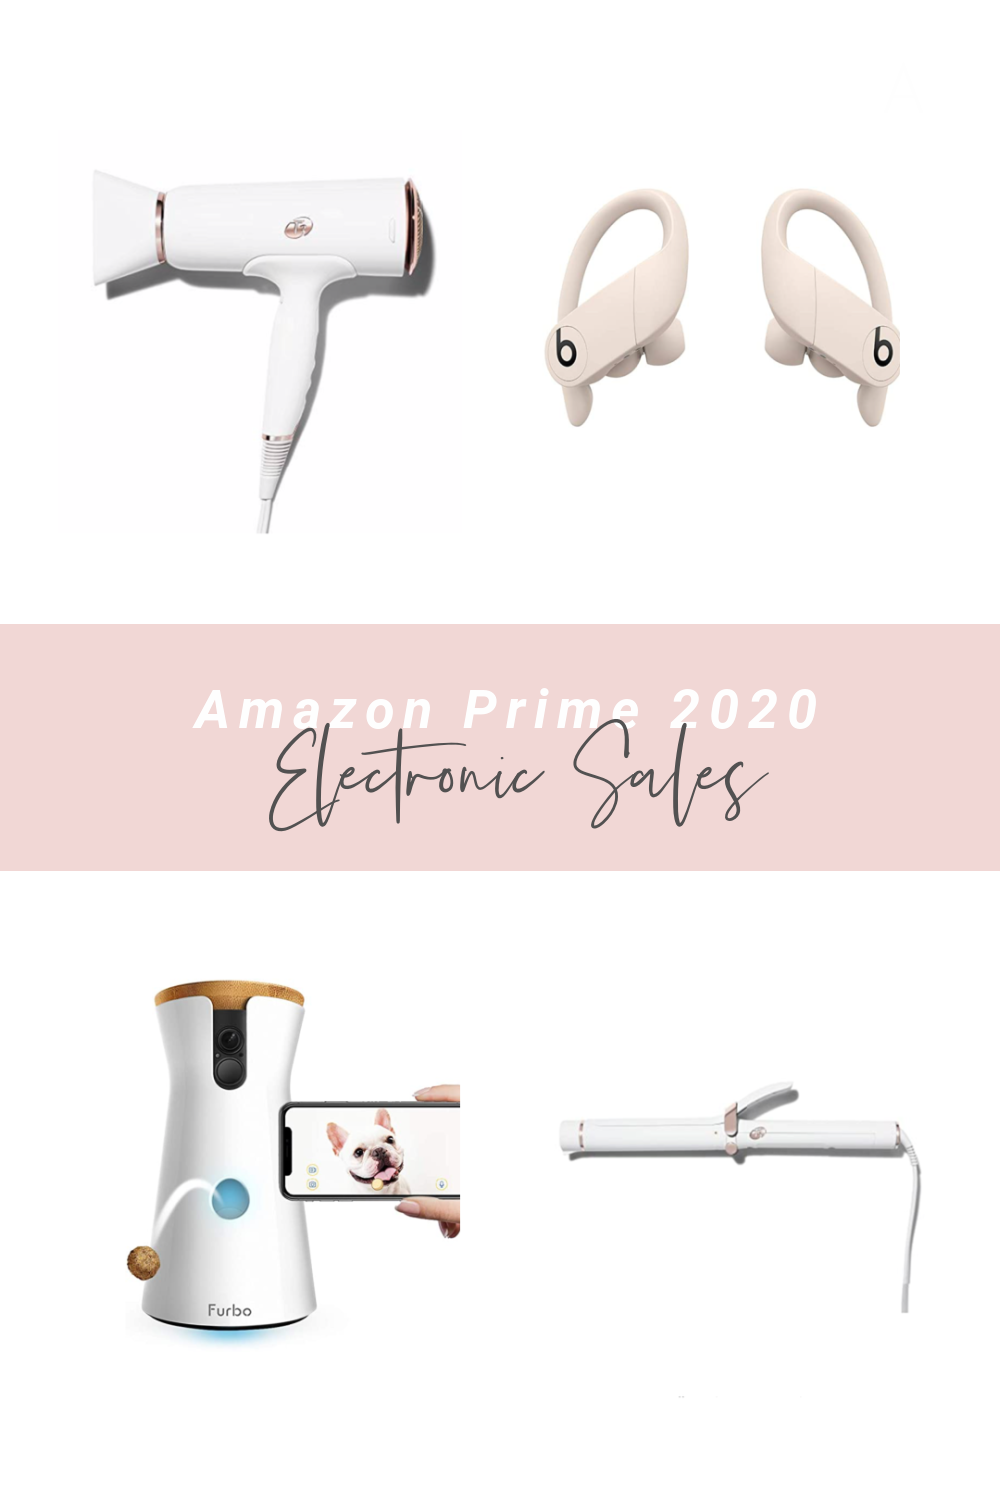 prime day gadgets | electronics prime day | hair dryer | beats | headphones | phone | mash elle lifestyle blogger